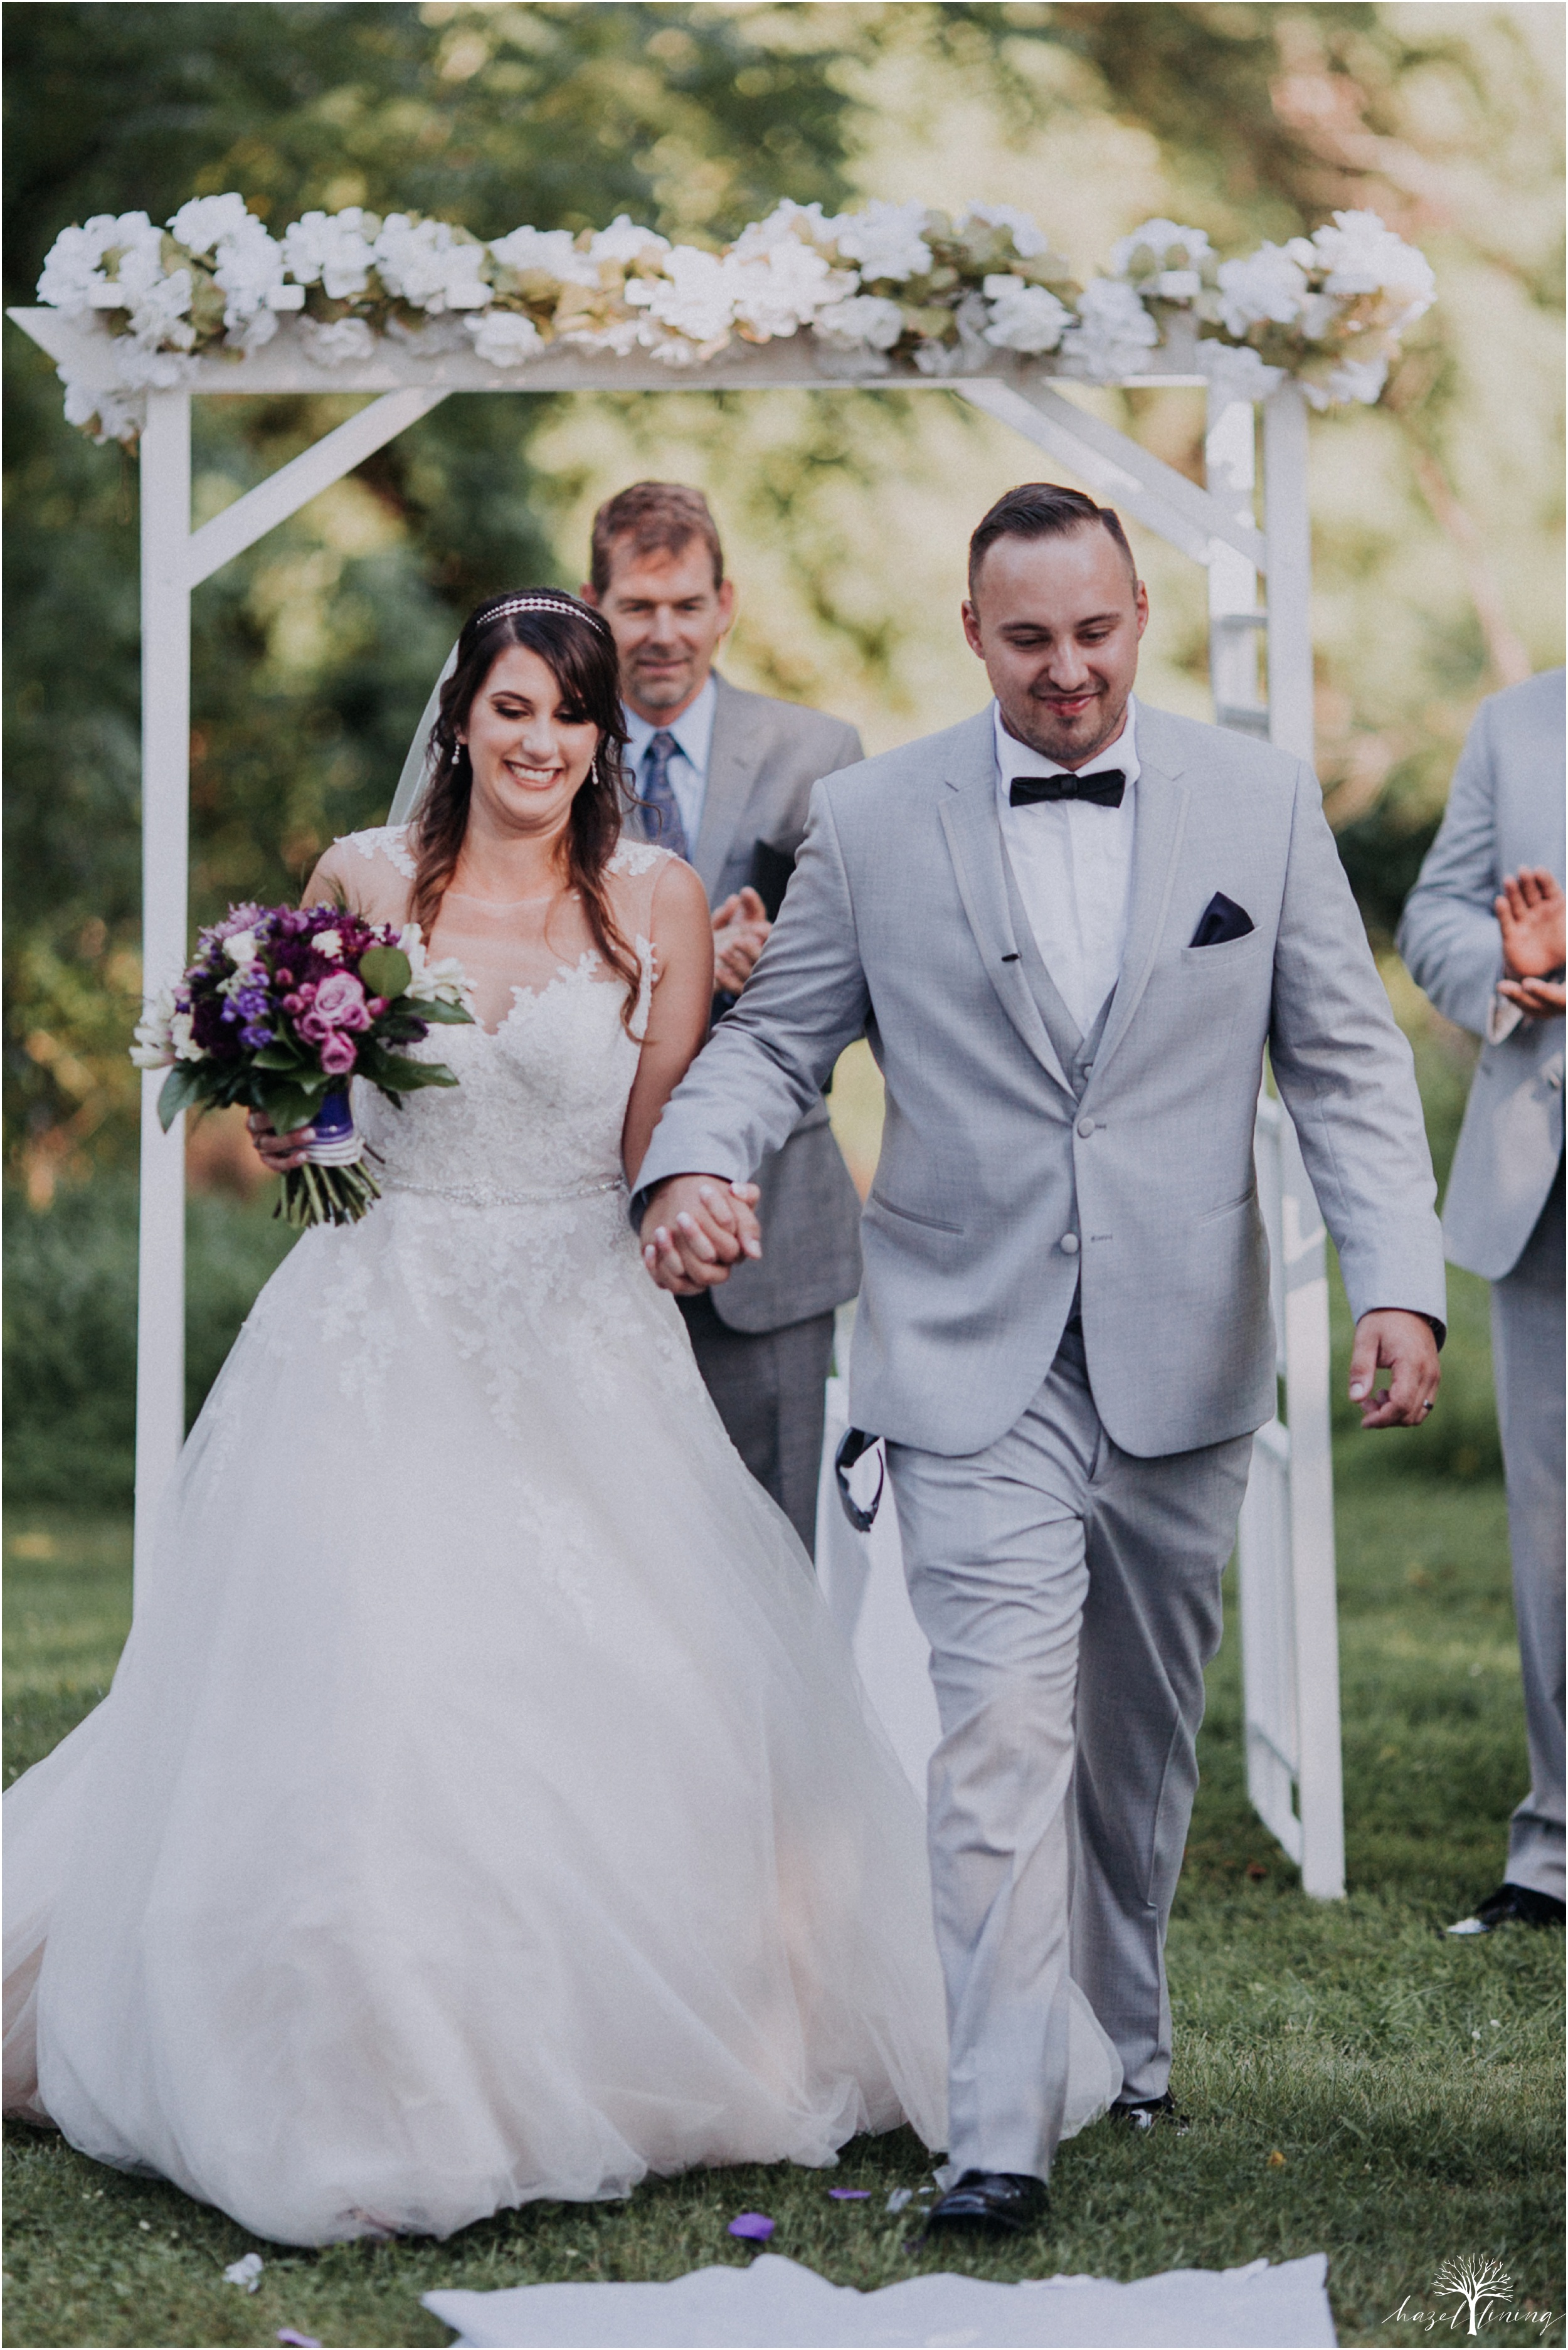 cassie-depinto-tyler-bodder-playwicki-farm-buck-hotel-featserville-trevose-pennsylvania-summer-outdoor-wedding-hazel-lining-travel-wedding-elopement-photography_0223.jpg